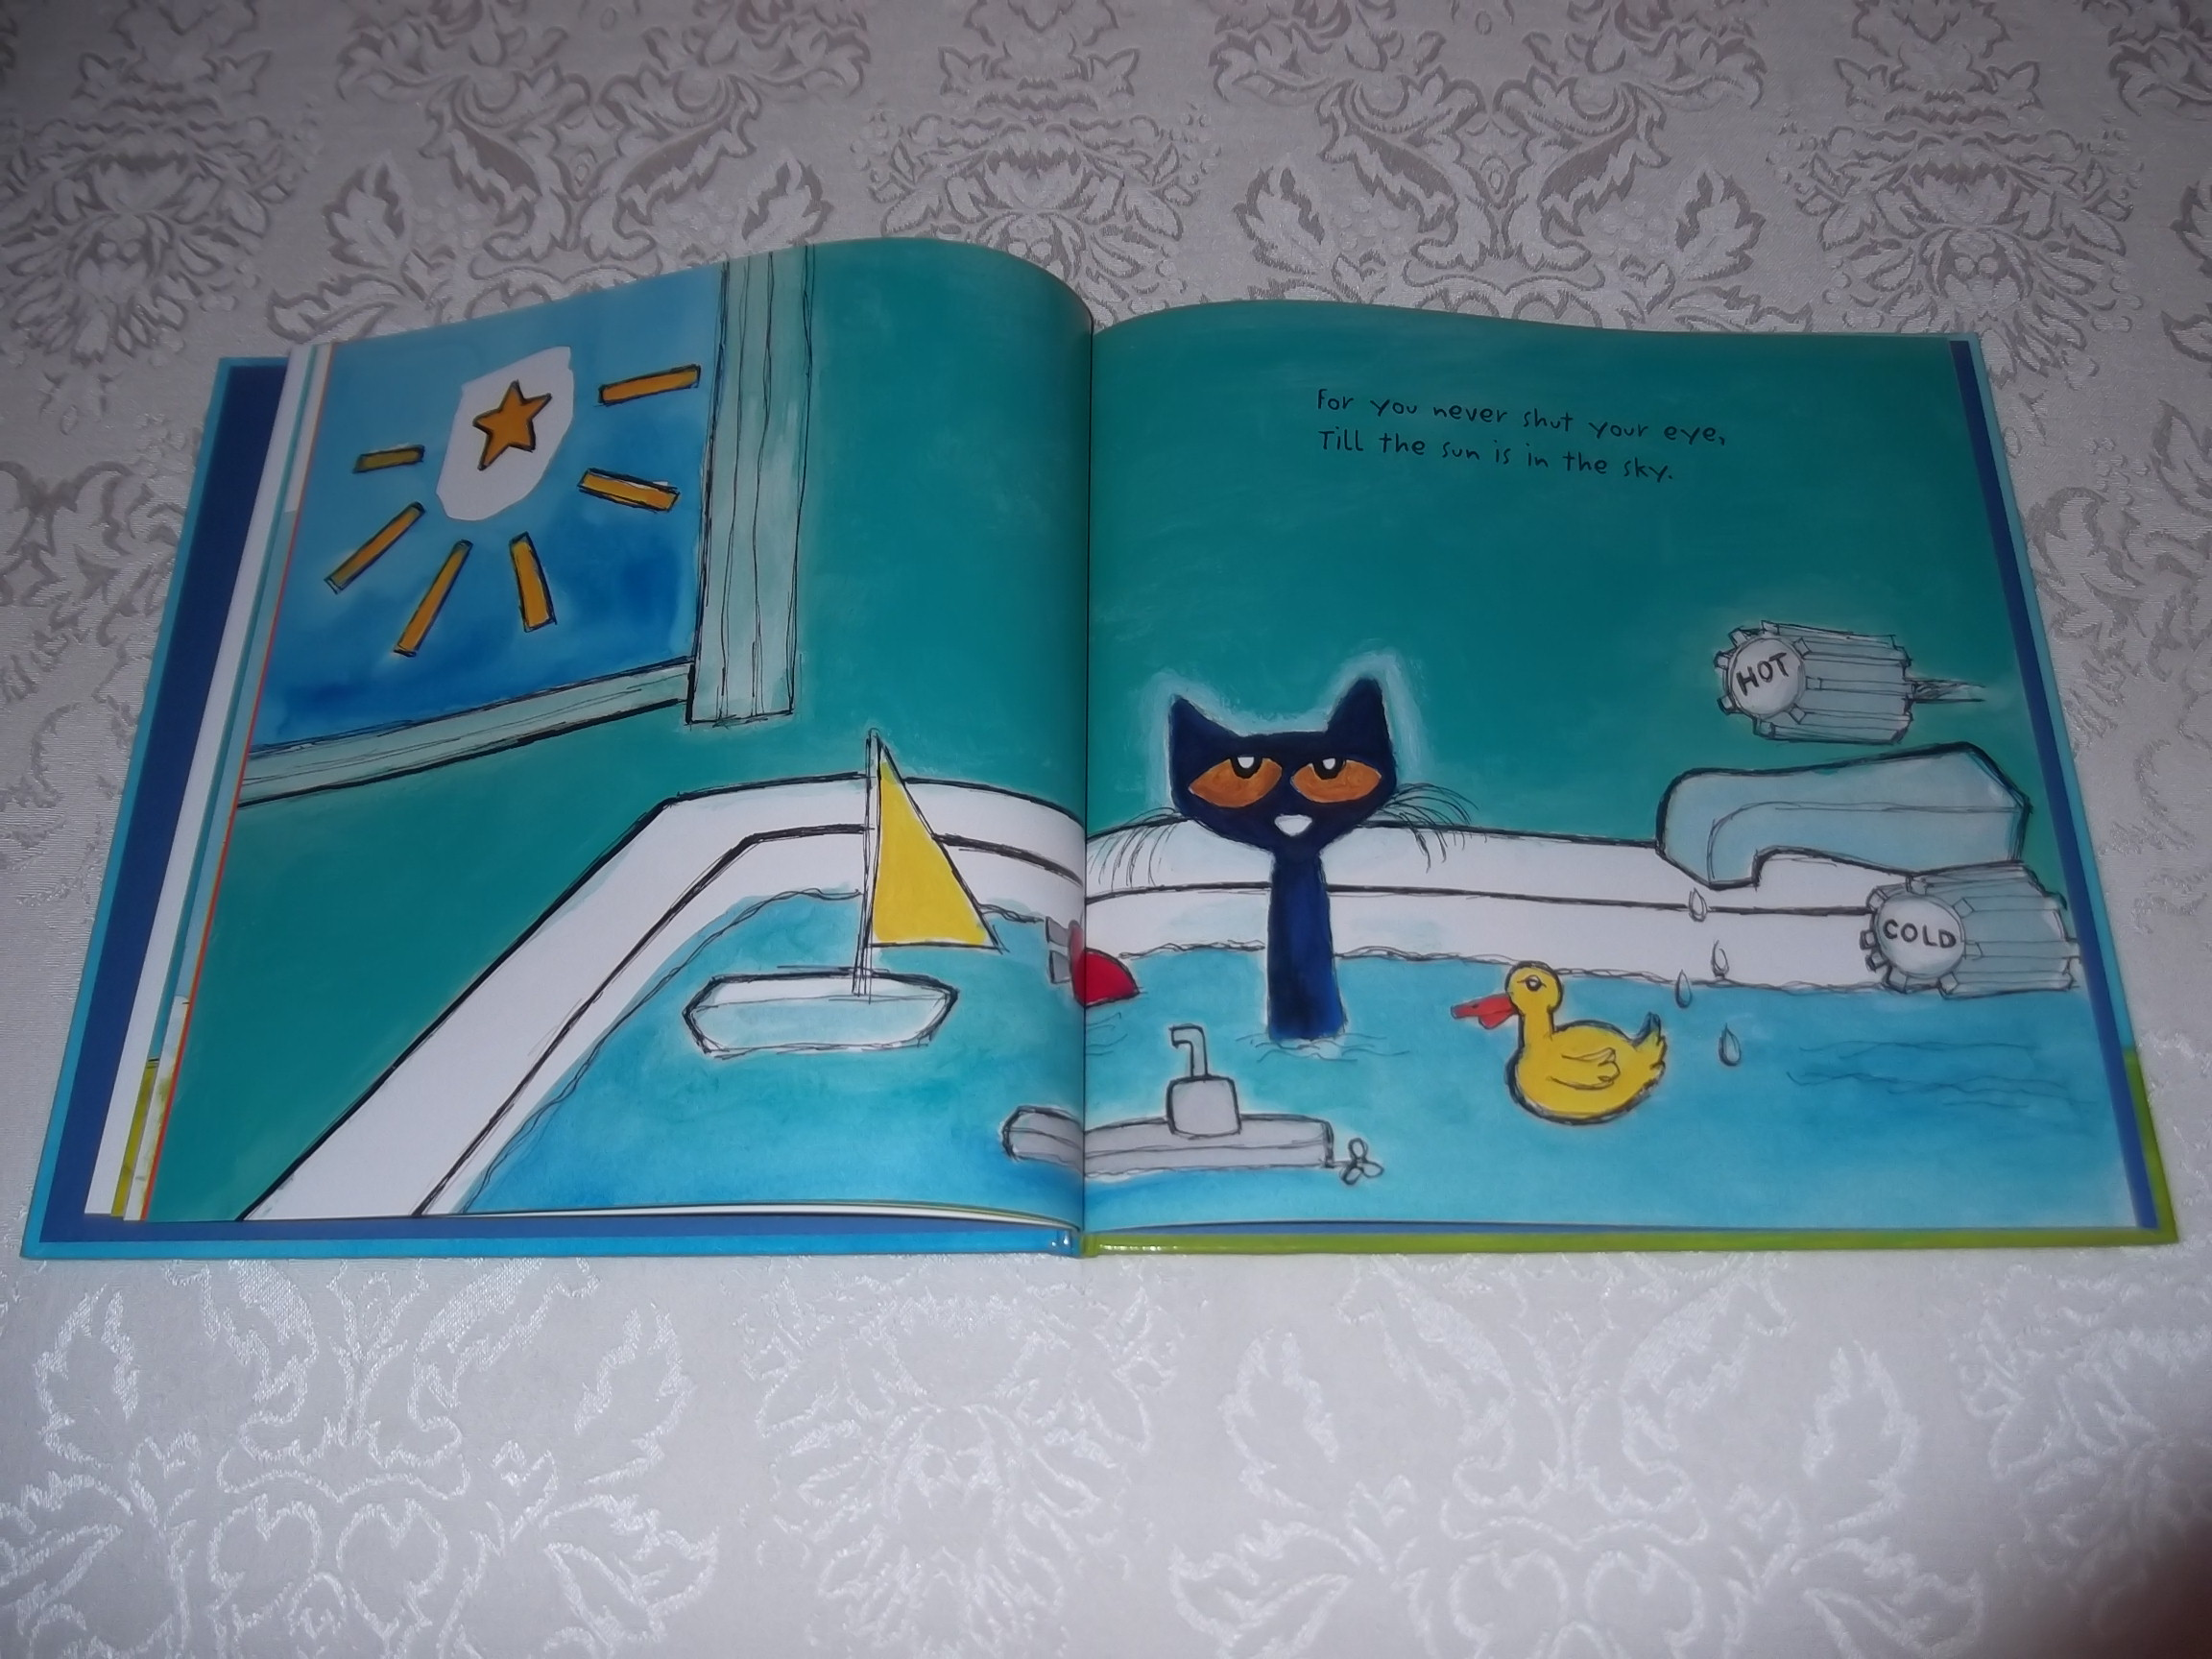 Image 7 of Pete the Cat Twinkle, Twinkle, Little Star James Dean Brand New HC